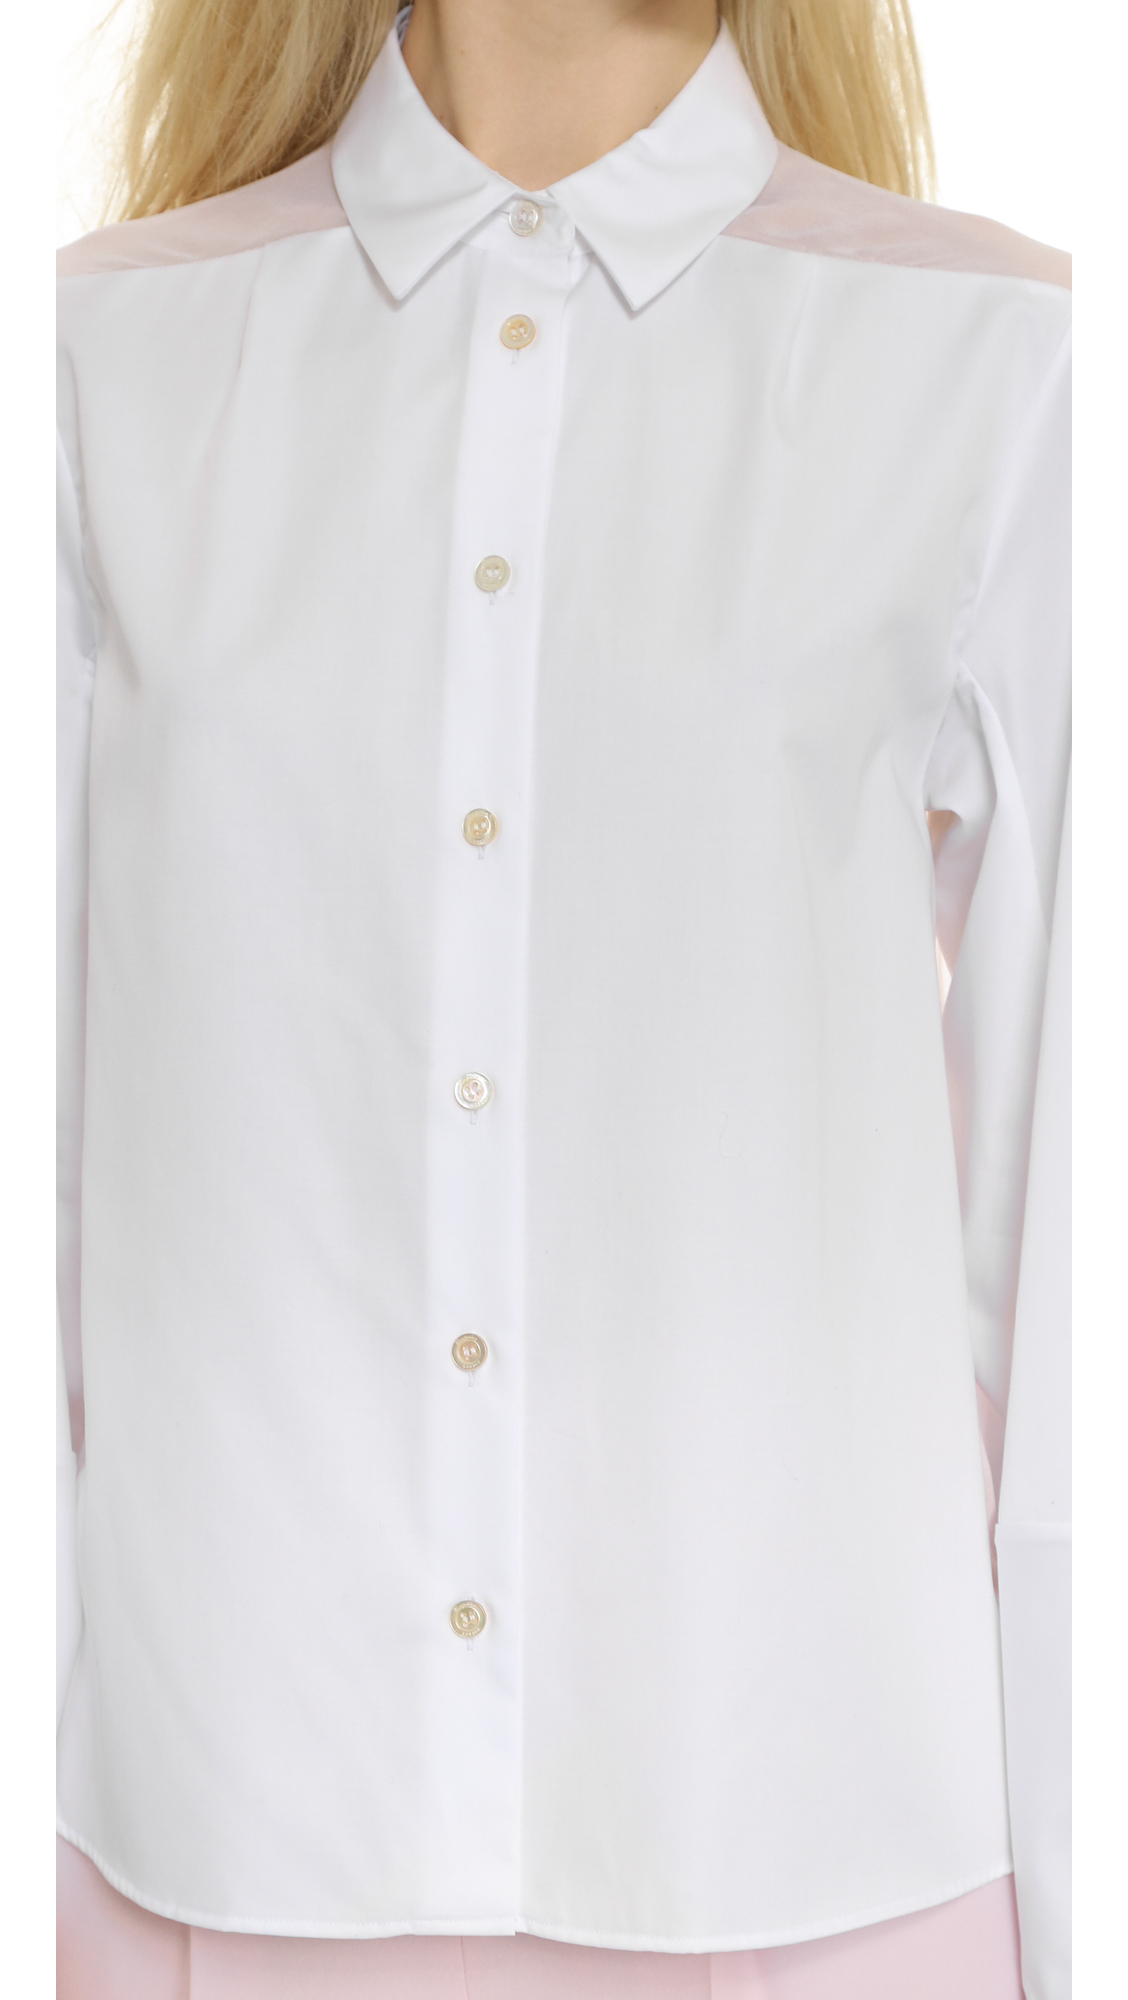 Temperley London Woman Sunray Stretch Cotton-poplin Blouse White Size 16 Temperley London Hot Sale Online Cheap Exclusive How Much Fast Shipping Ost Release Dates Gs7YT4Lfxh